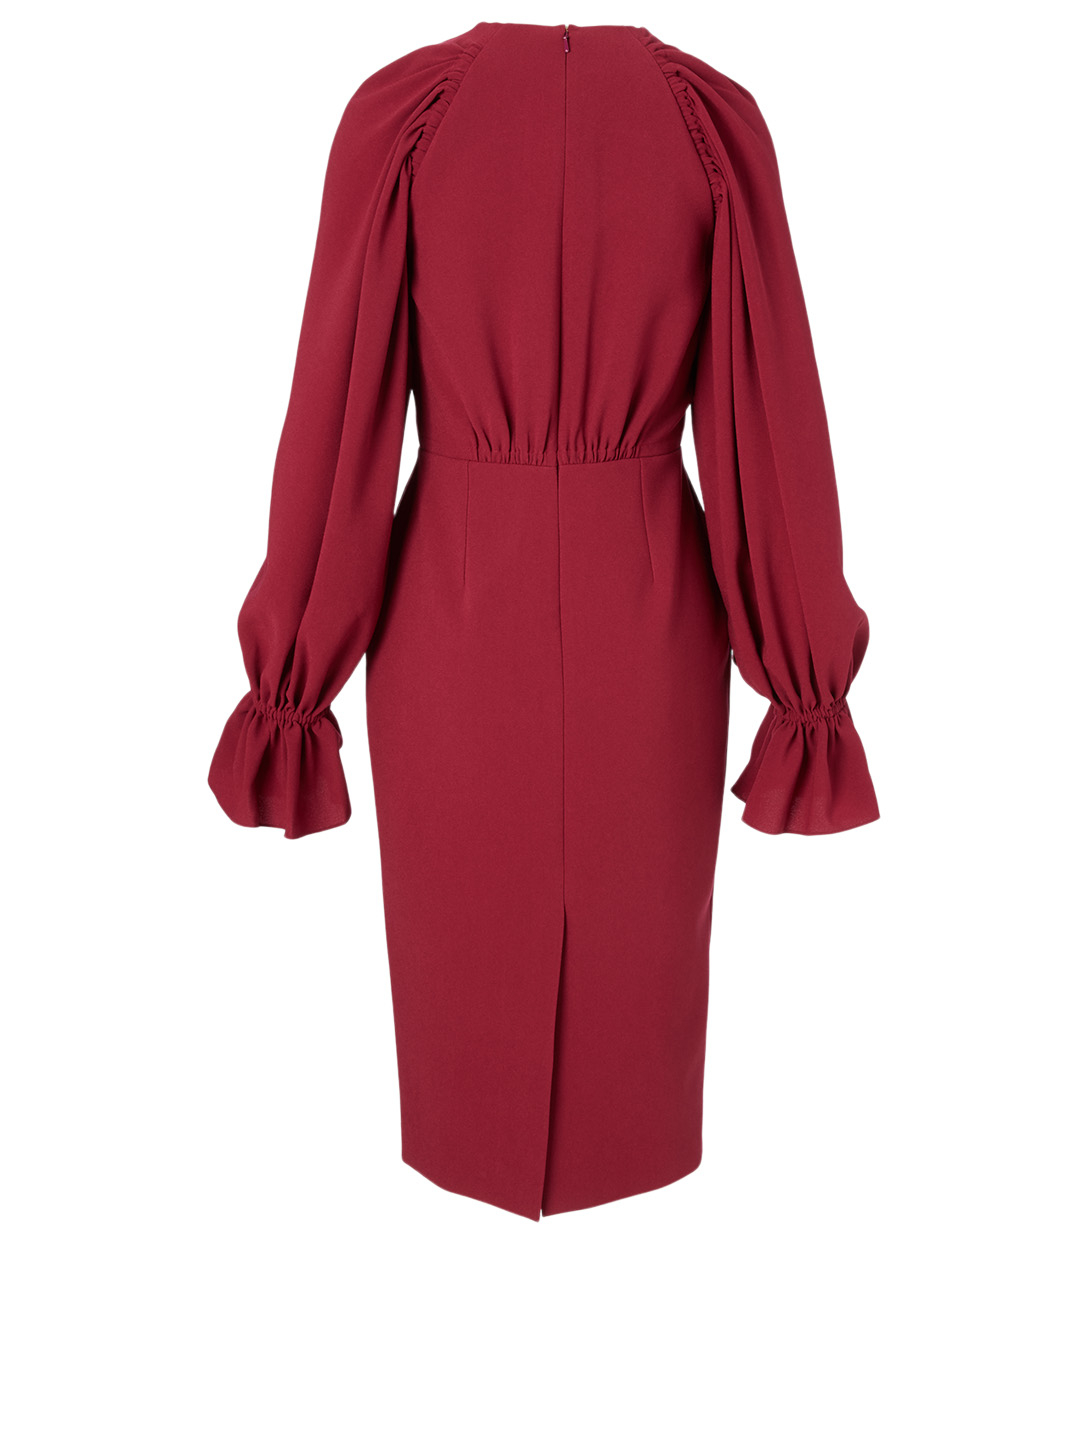 ROKSANDA Vaniria Long-Sleeve Dress Women's Red